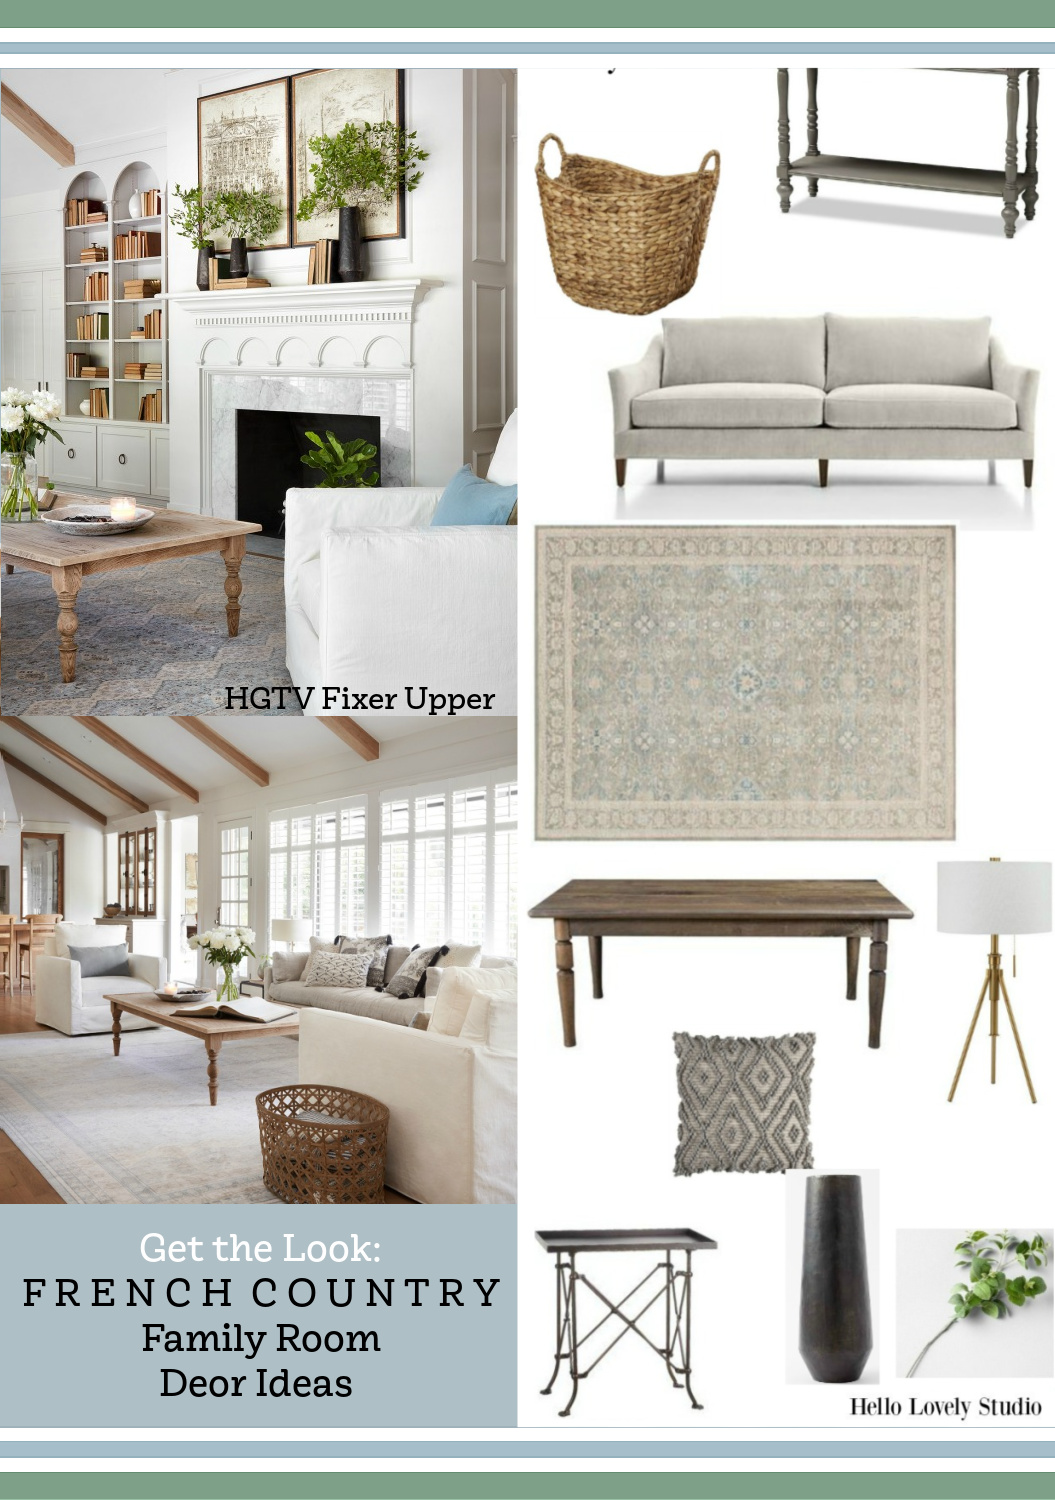 Get the look: French Country family room inspired by The Club House on Fixer Upper (HGTV). #frenchcountry #familyroom #geththelook #shopthelook #clubhousefixerupper